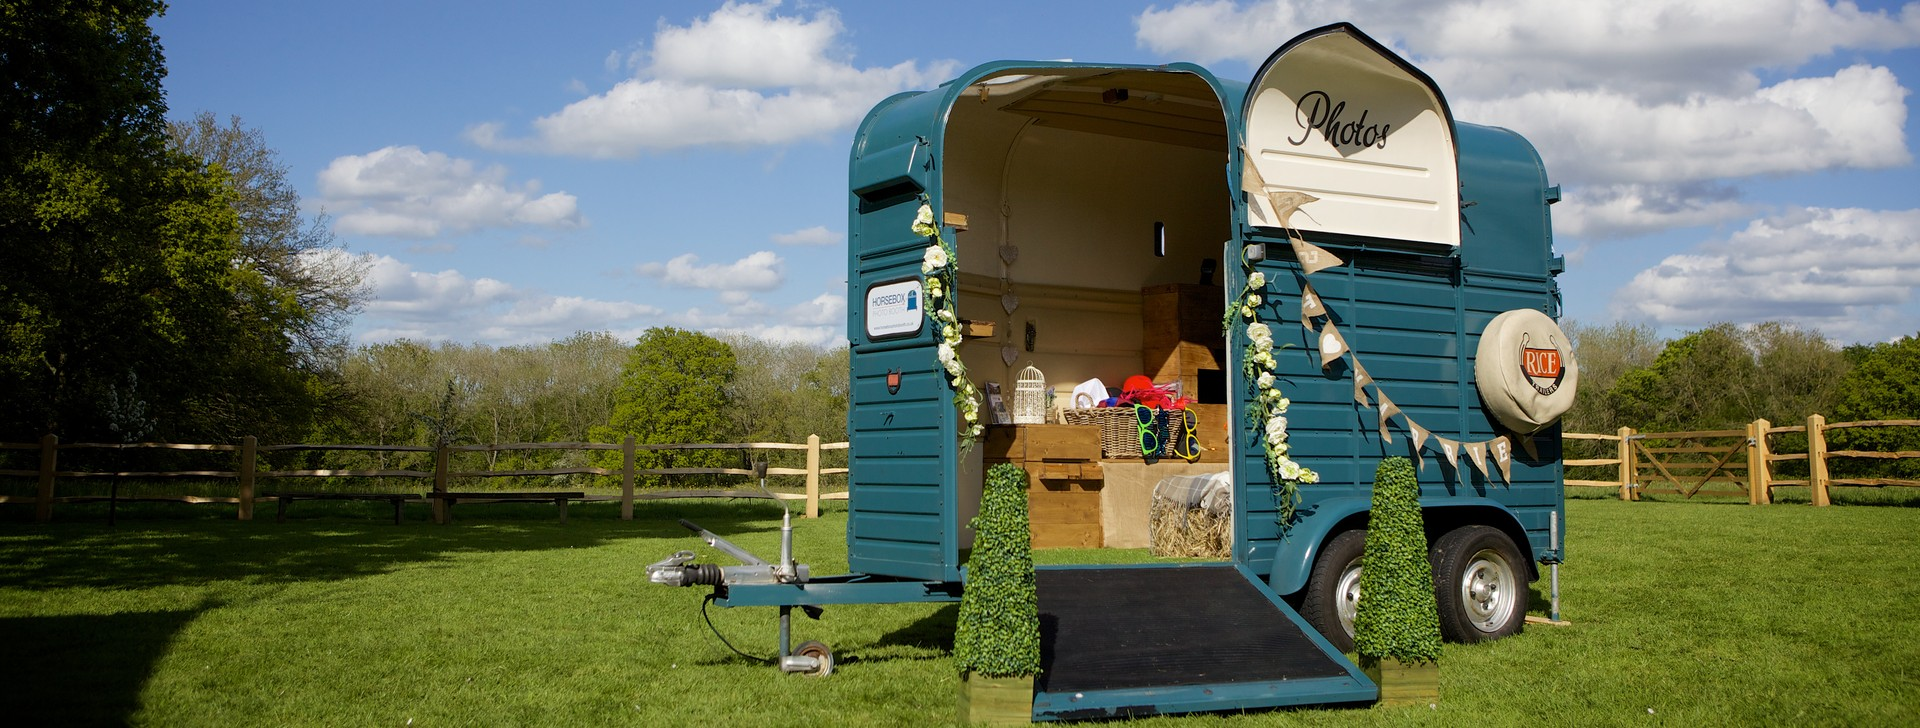 Horsebox Photo Booth Wedding and Event Photo Booth in Sussex